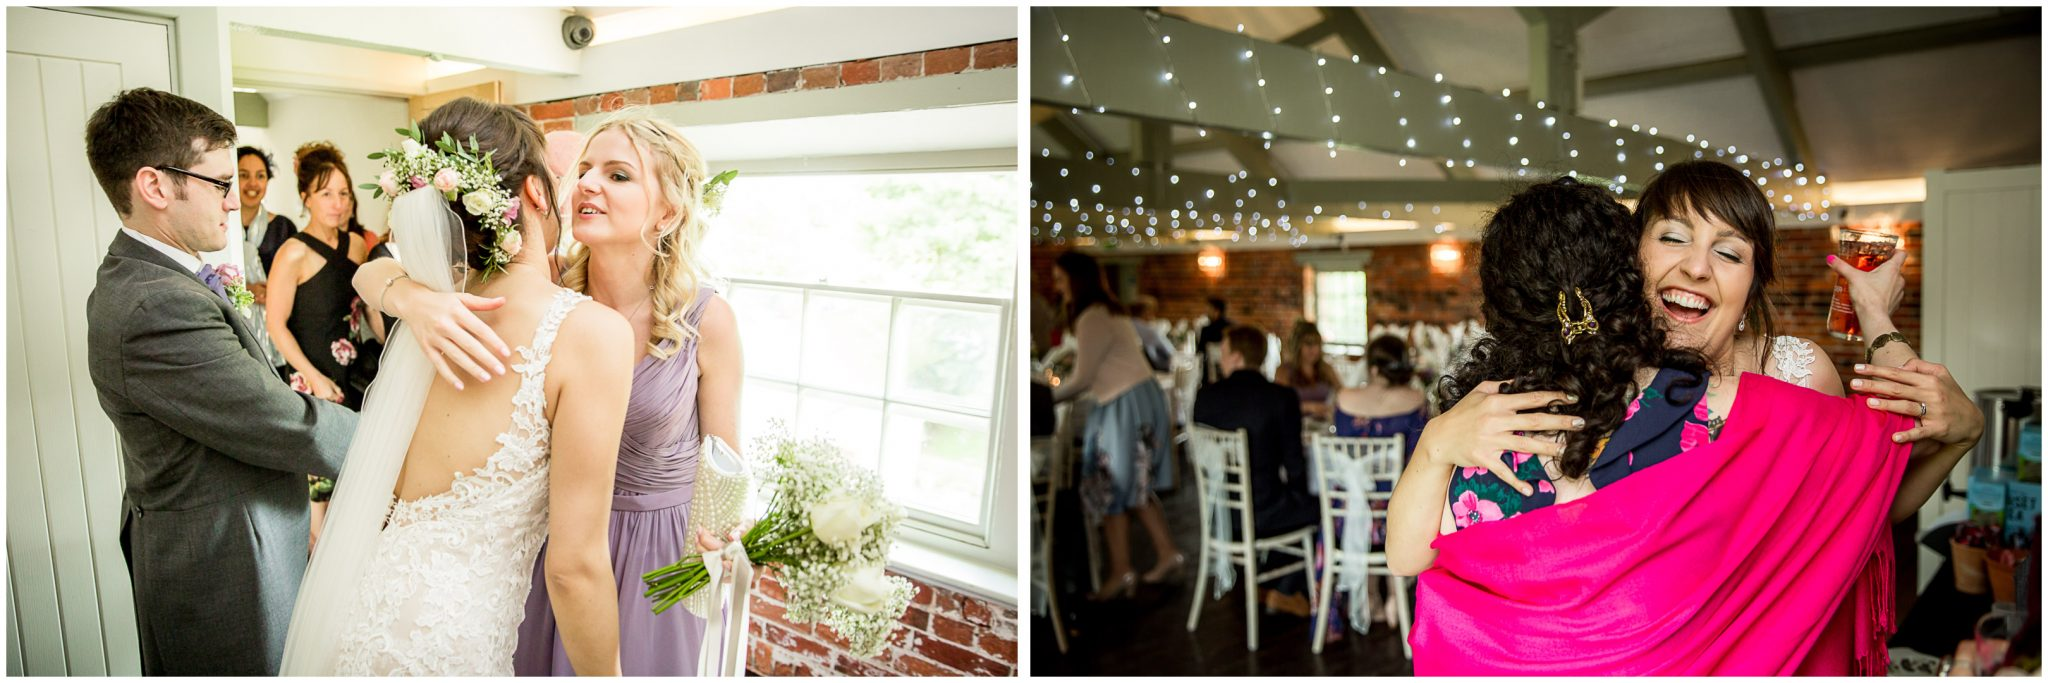 Sopley Mill wedding photography hugs and kisses for guests from bride